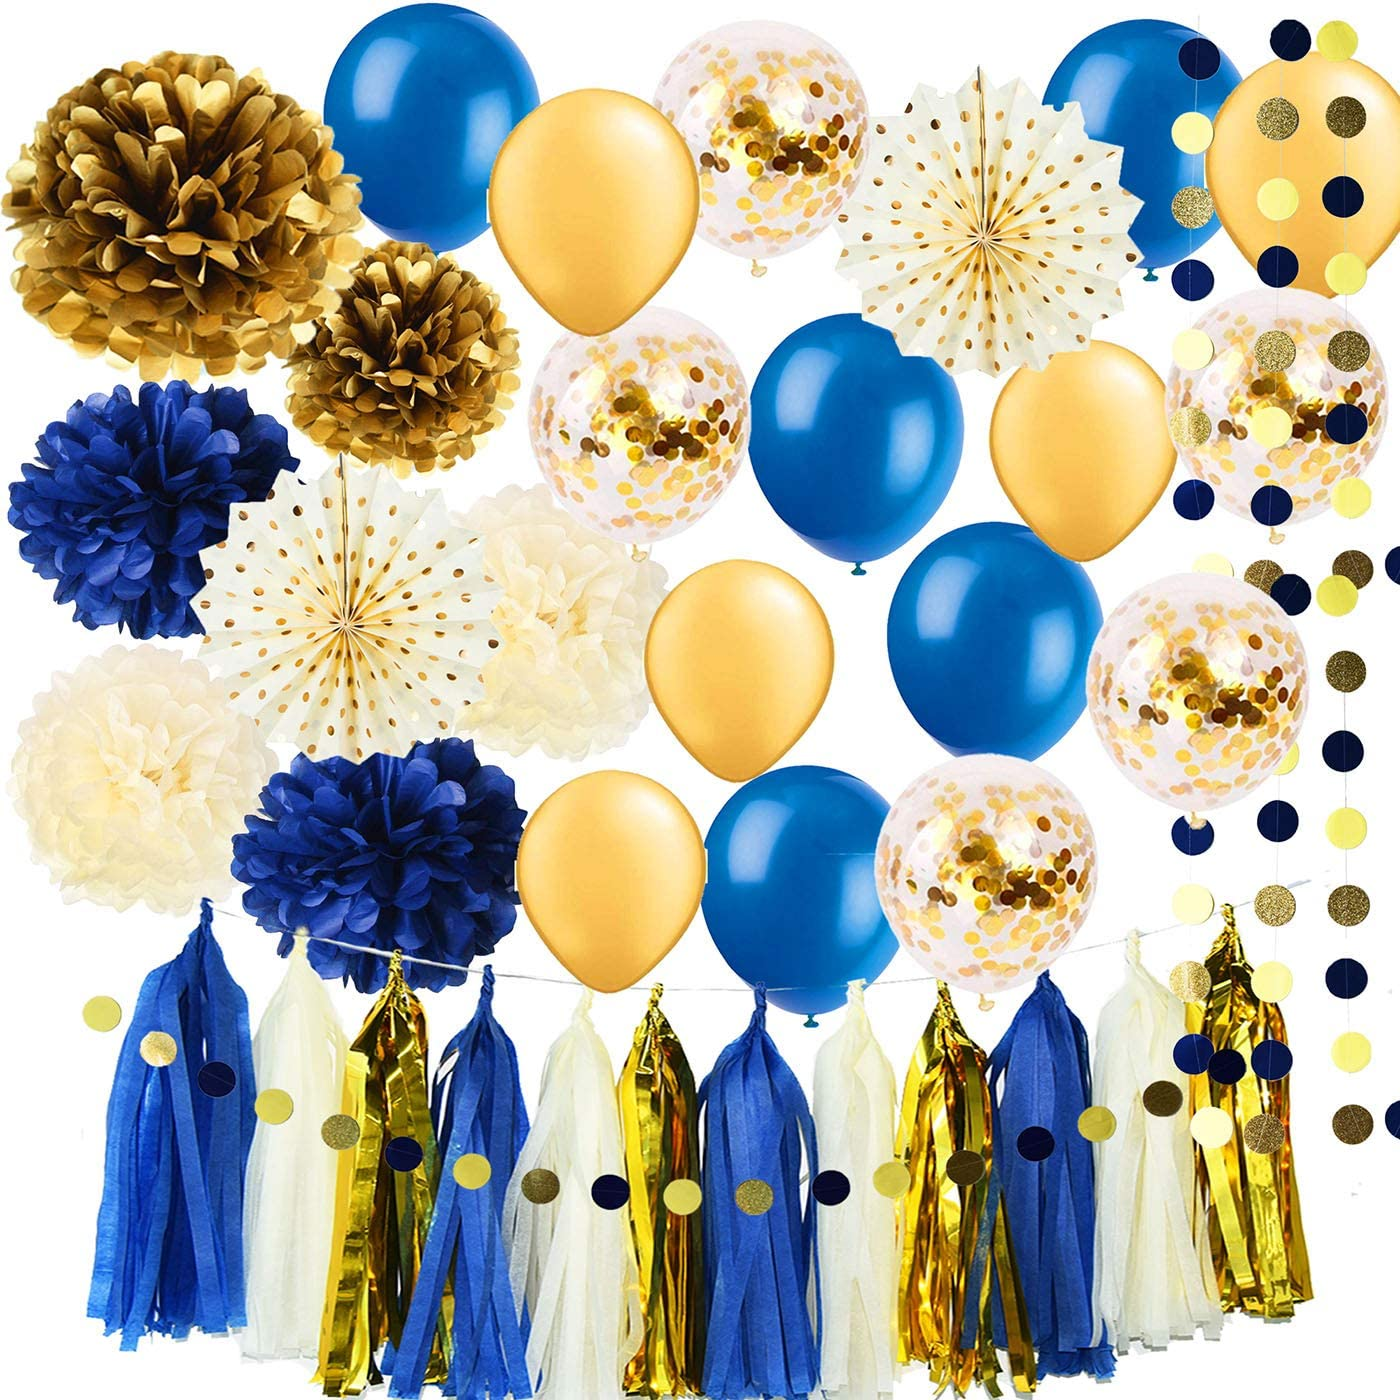 Royal Pince Birthday Decorations for Boy/Baby Shower Decorations for Boy/ Tissue Pom Pom Latex Balloons Gold Polka Dot Paper Fans for Boy First Birthday Little Prince Navy Gold Decorations